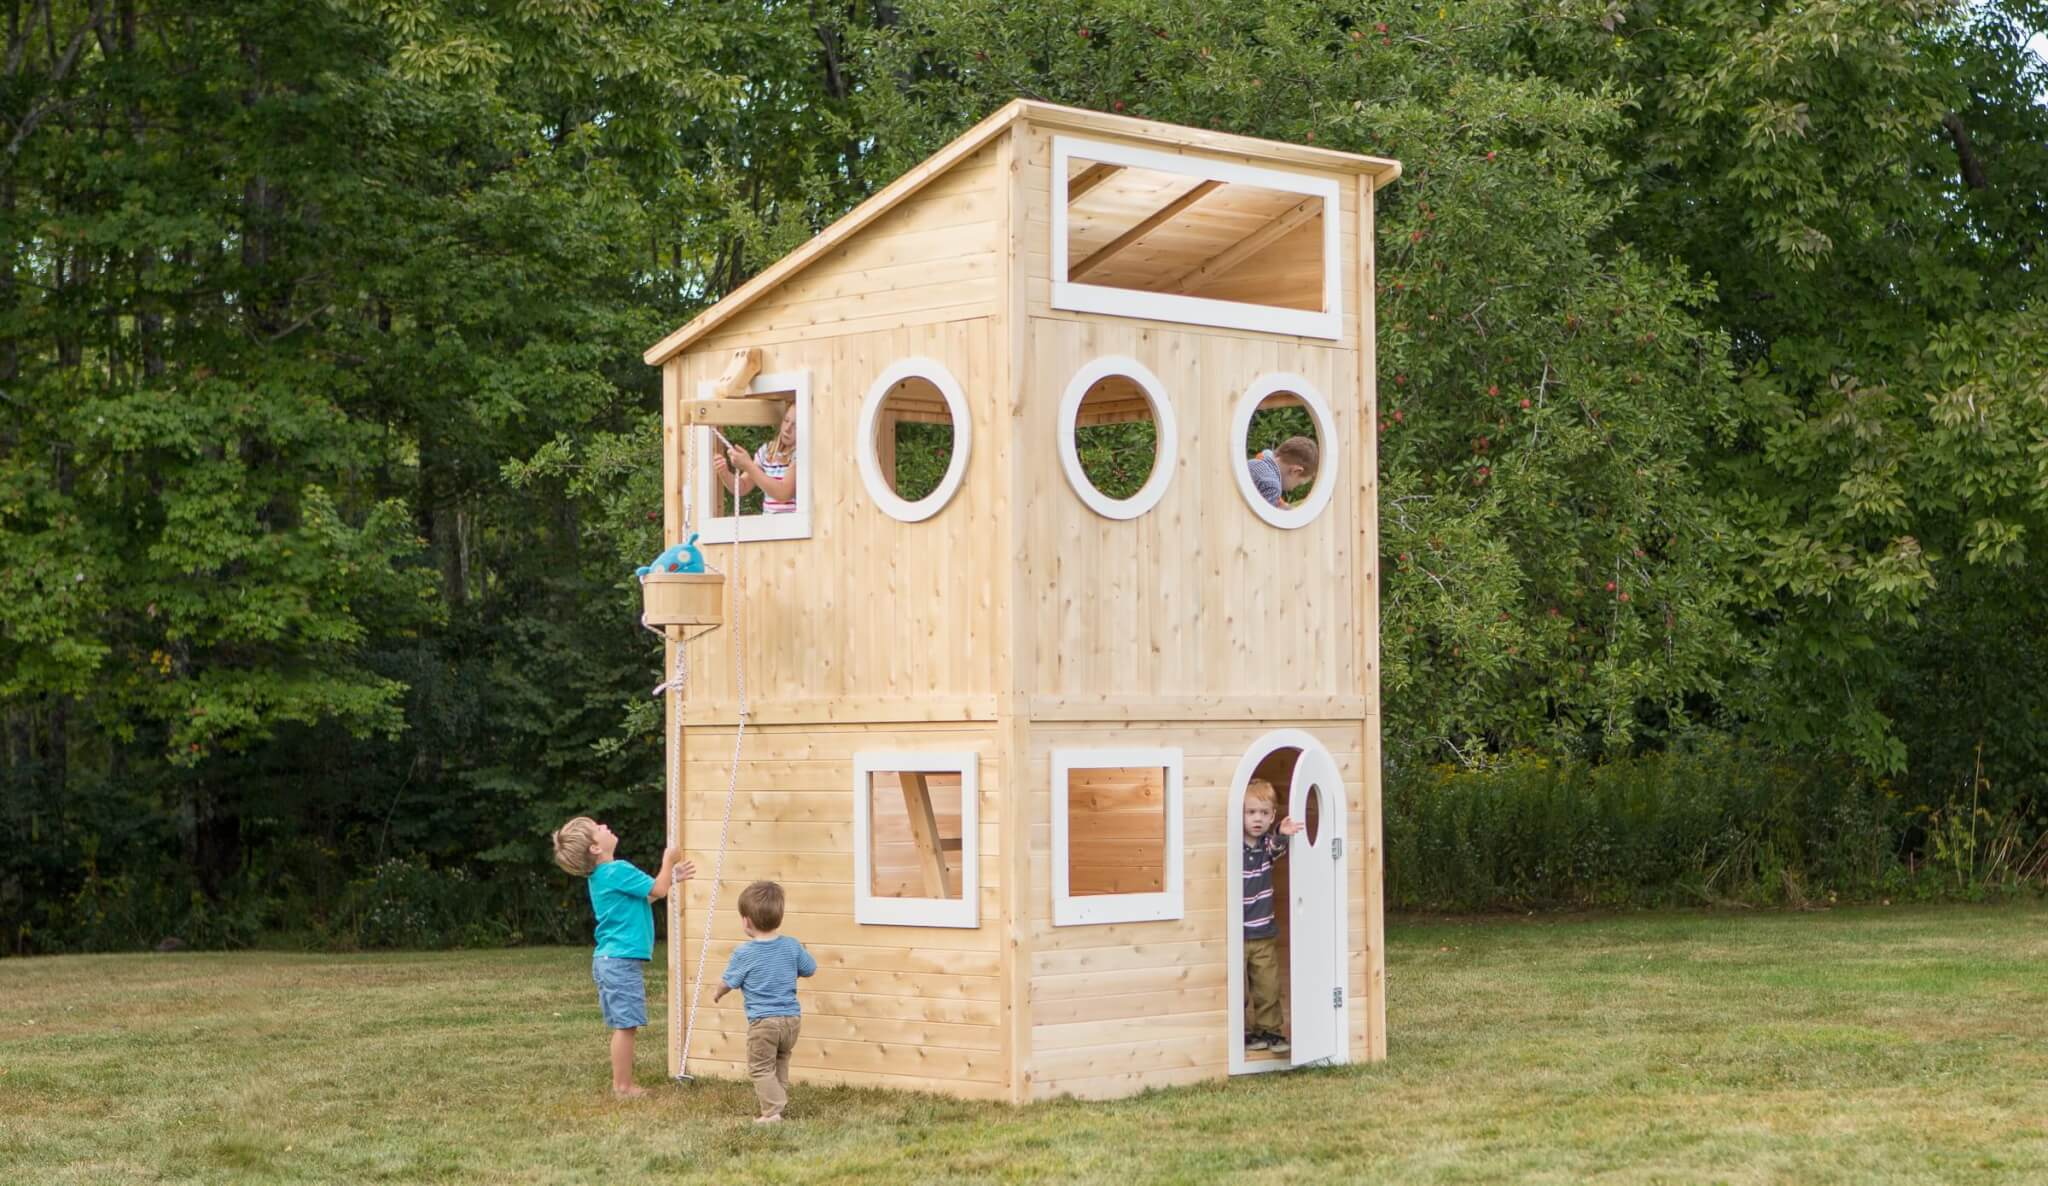 Modern-Design Playhouse